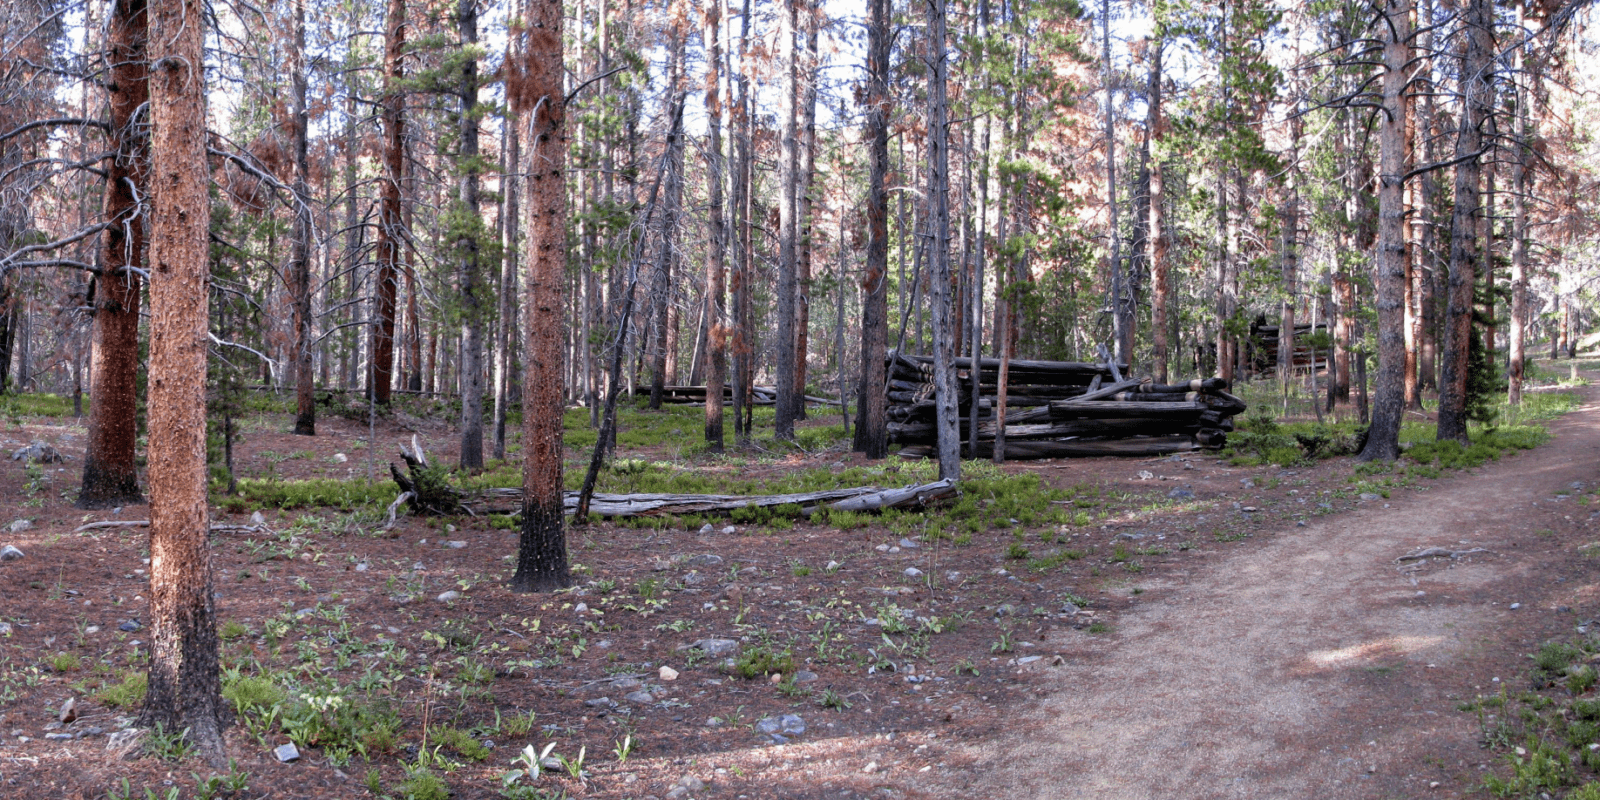 Image of the remnants of teller city in colorado